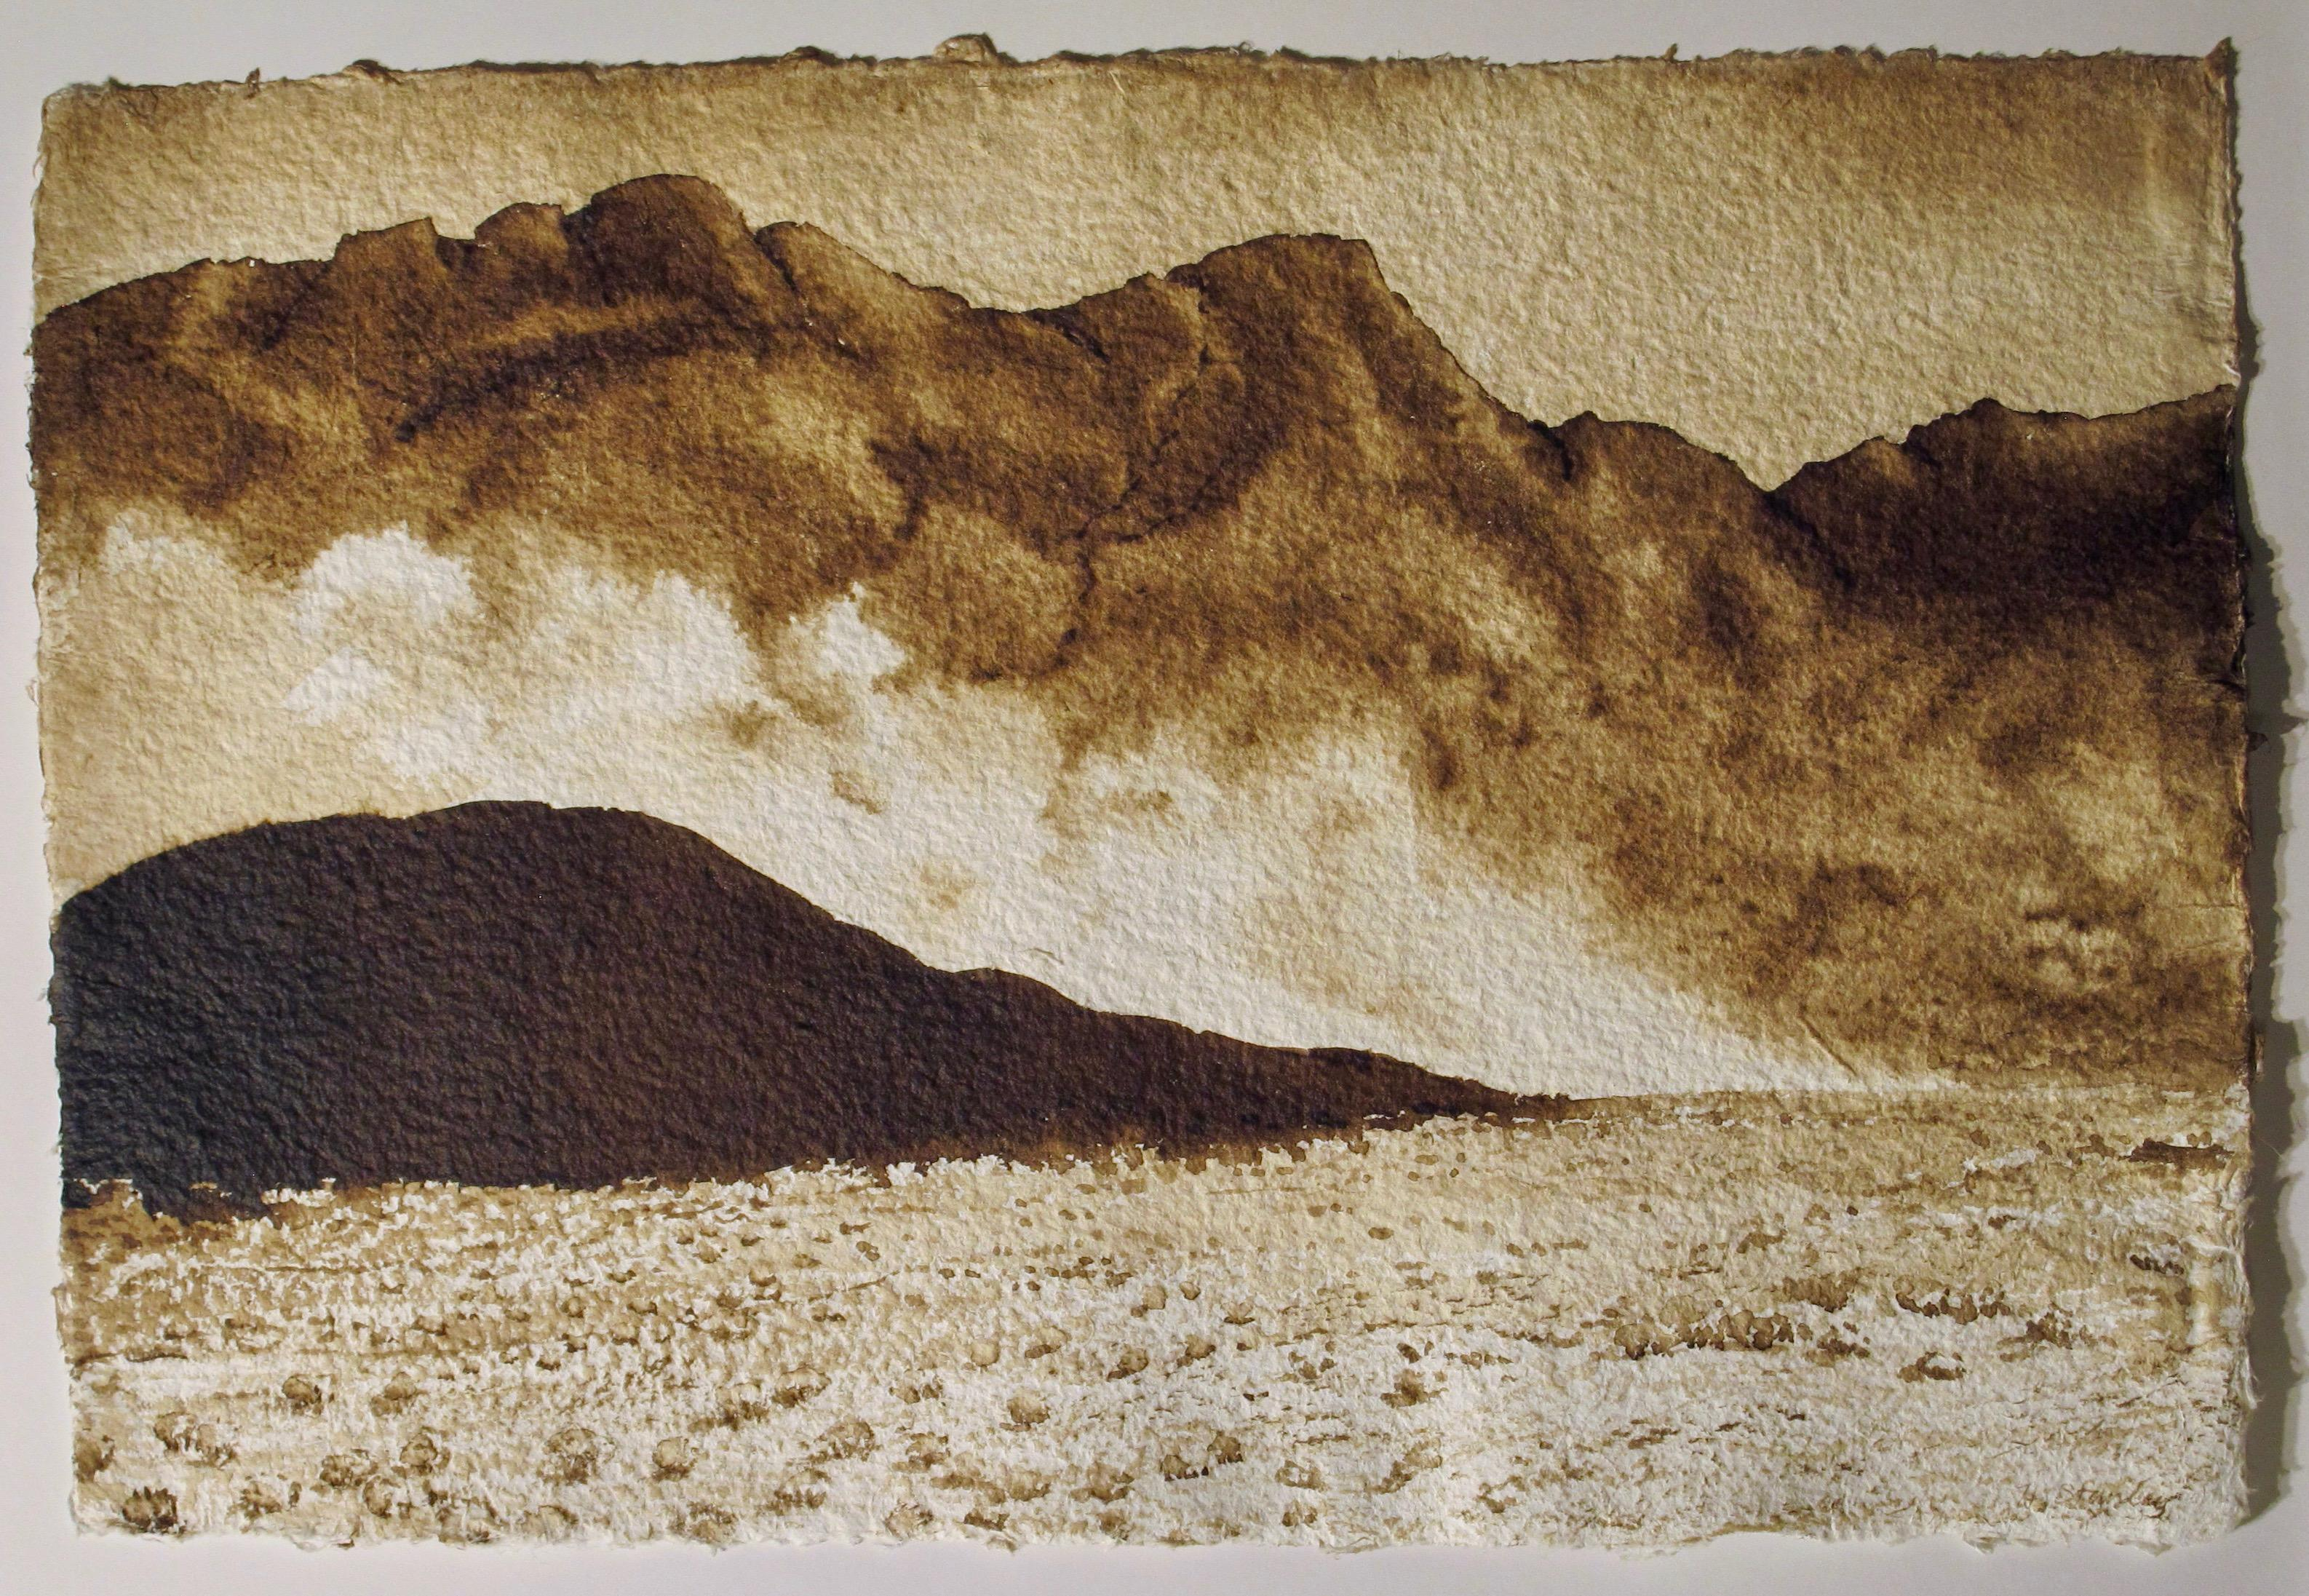 Amboy Crater, Southern California, painting on paper, walnut ink, landscape